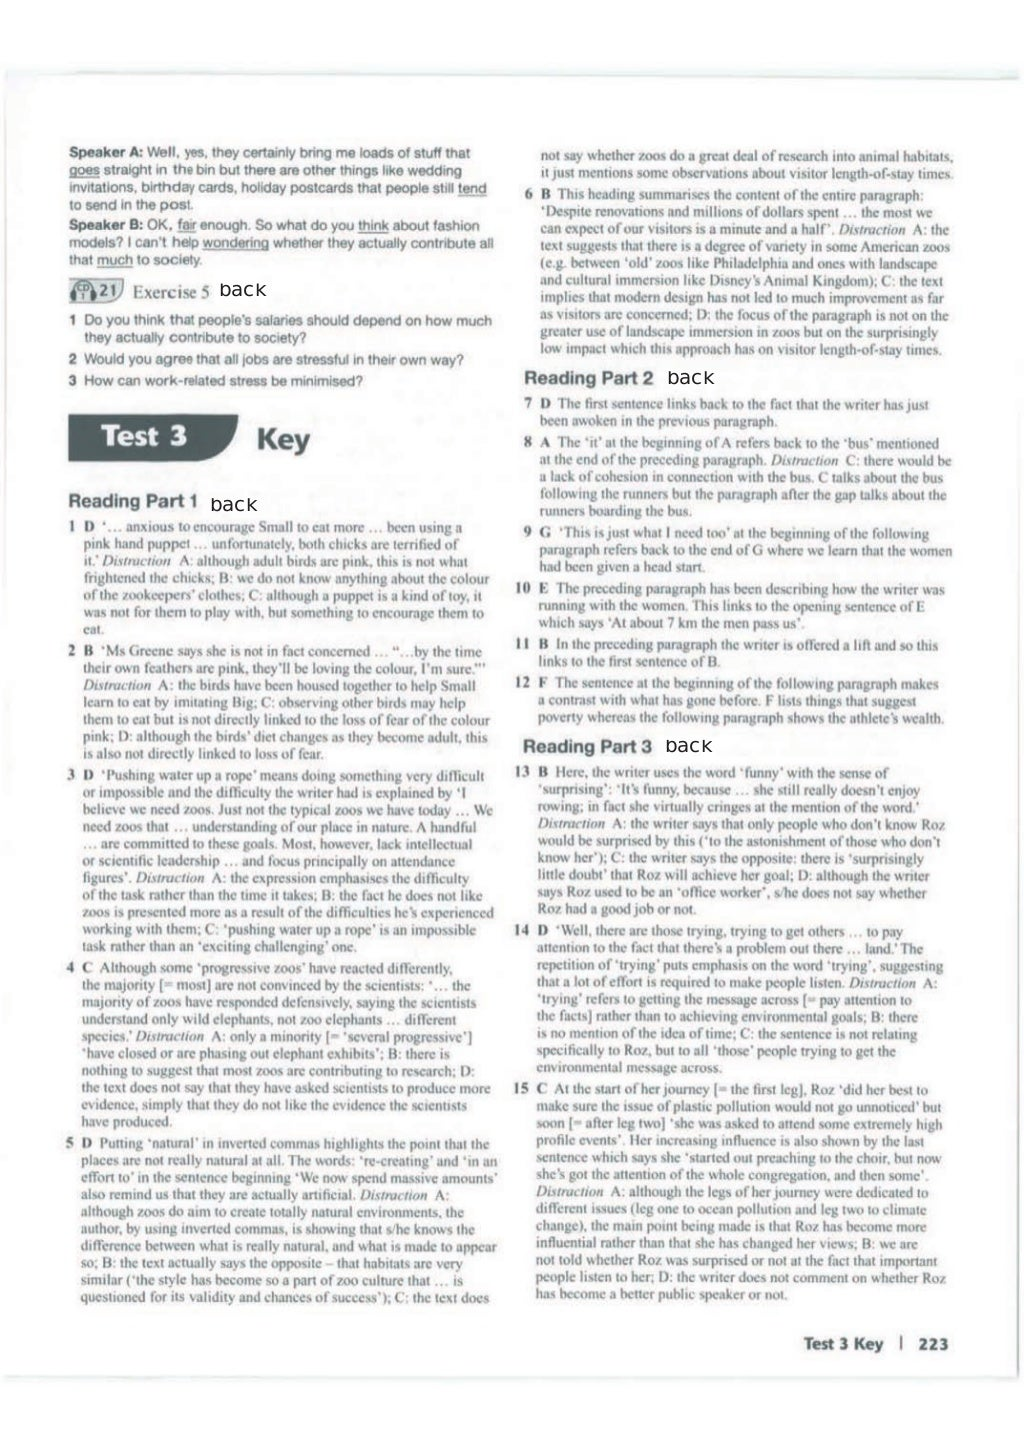 Advanced trainer 6 practice tests with answers book4joy (1) page 224